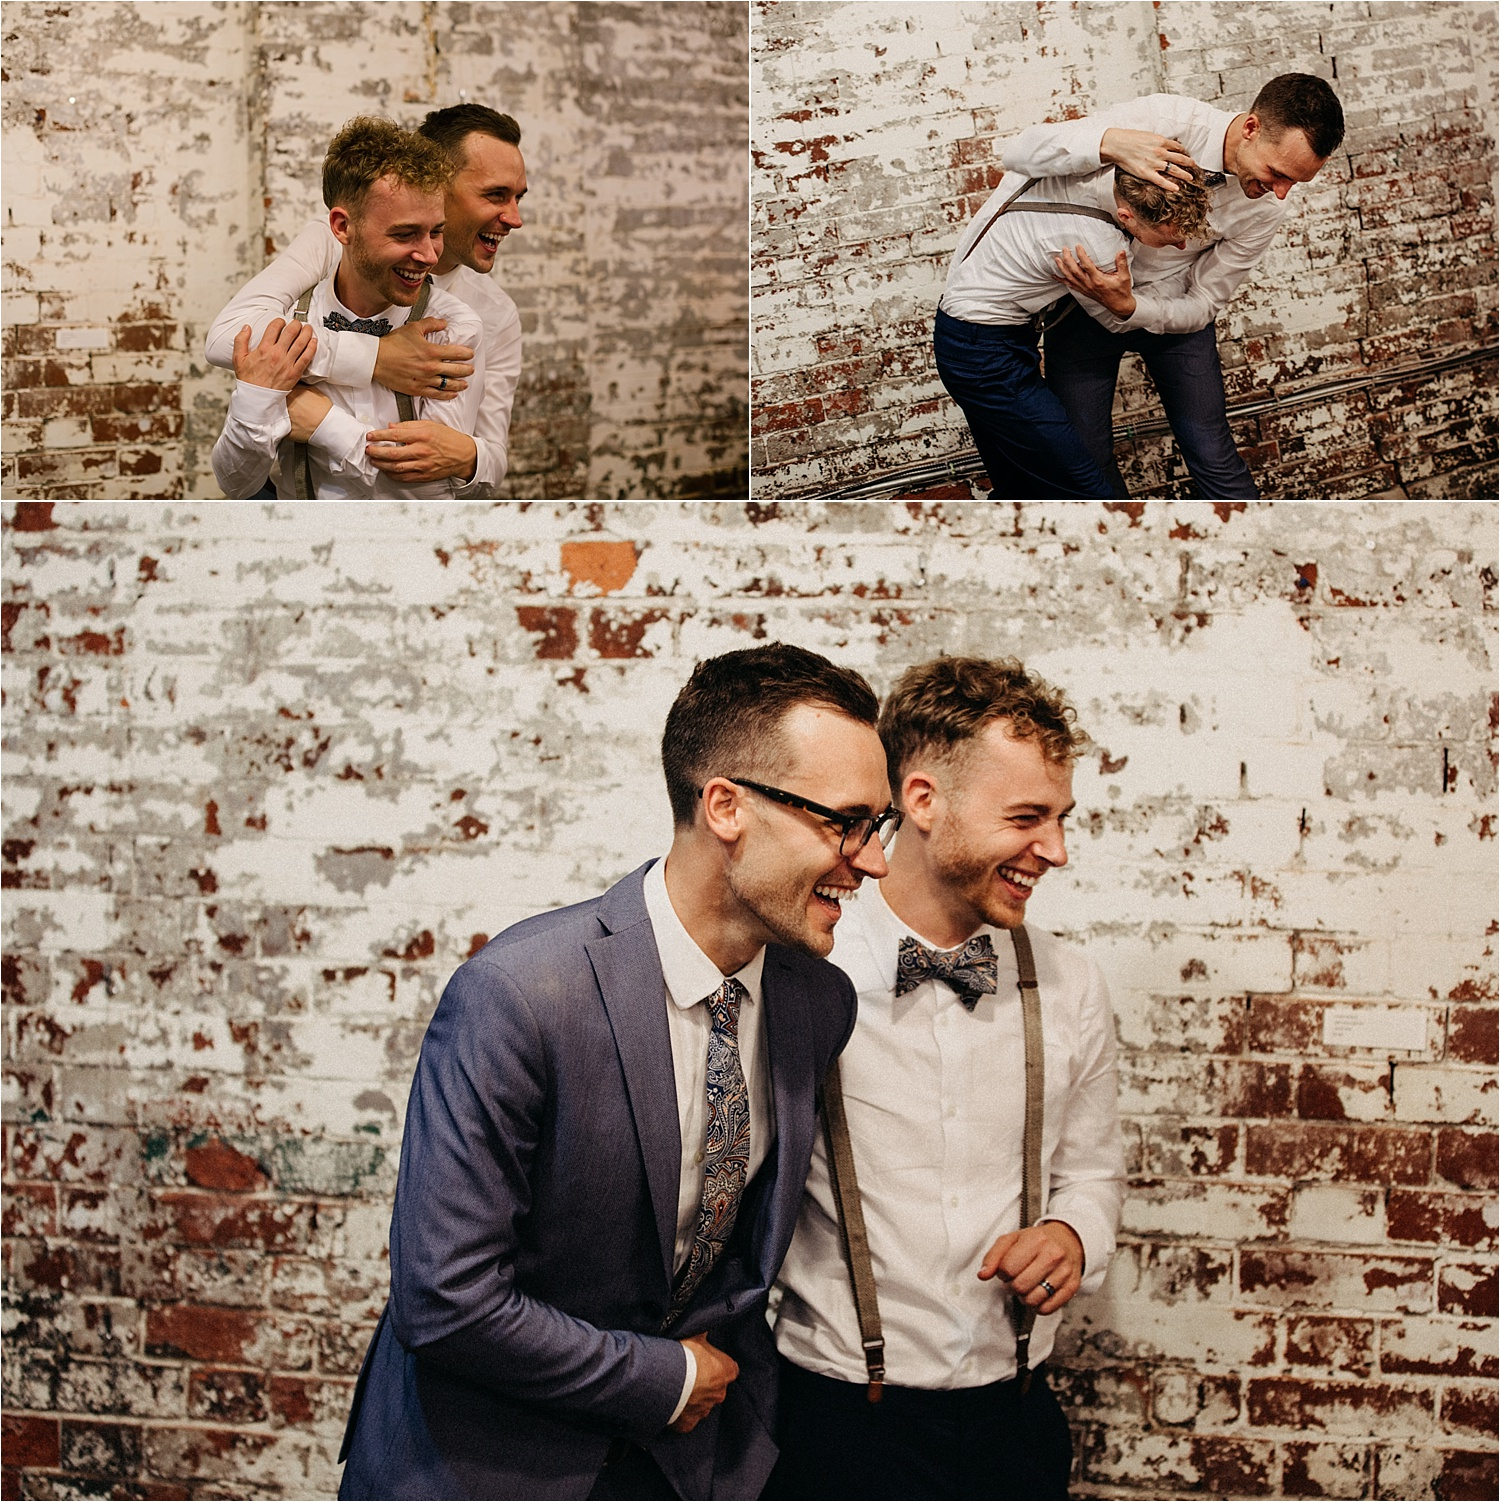 Artistic Gay Wedding Photography